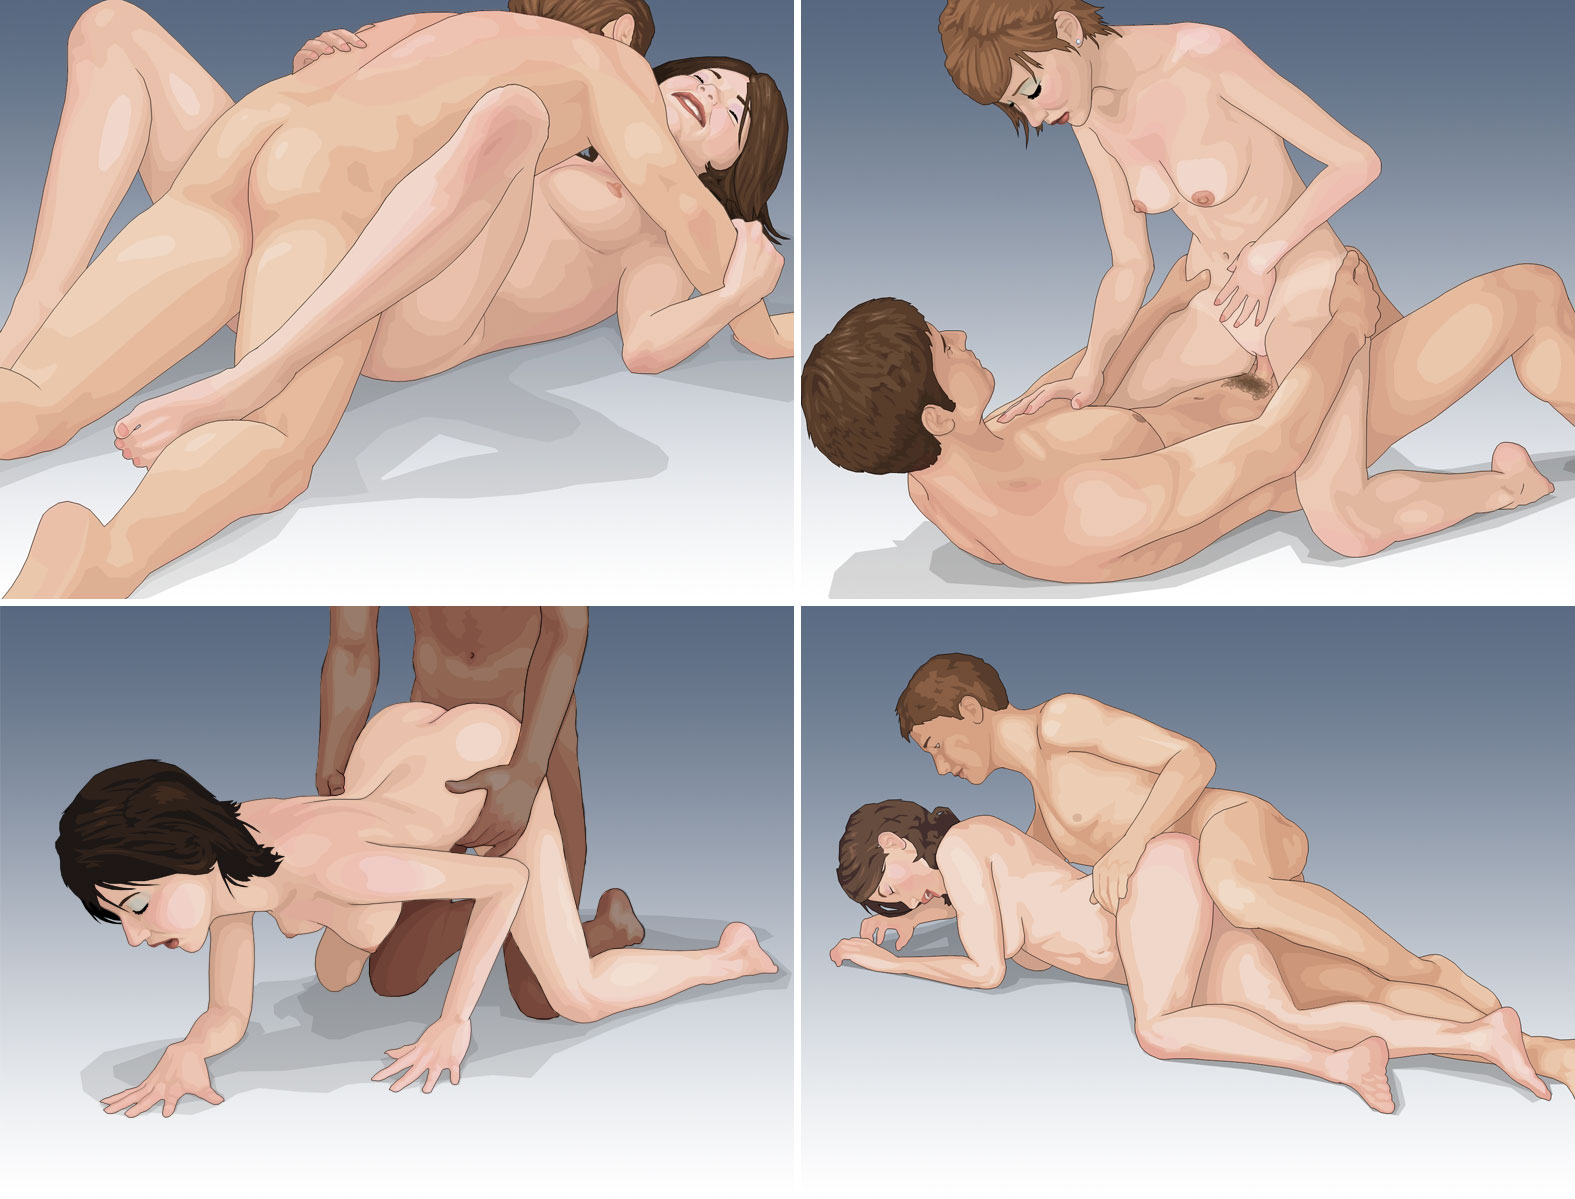 Th best practices for anal sex